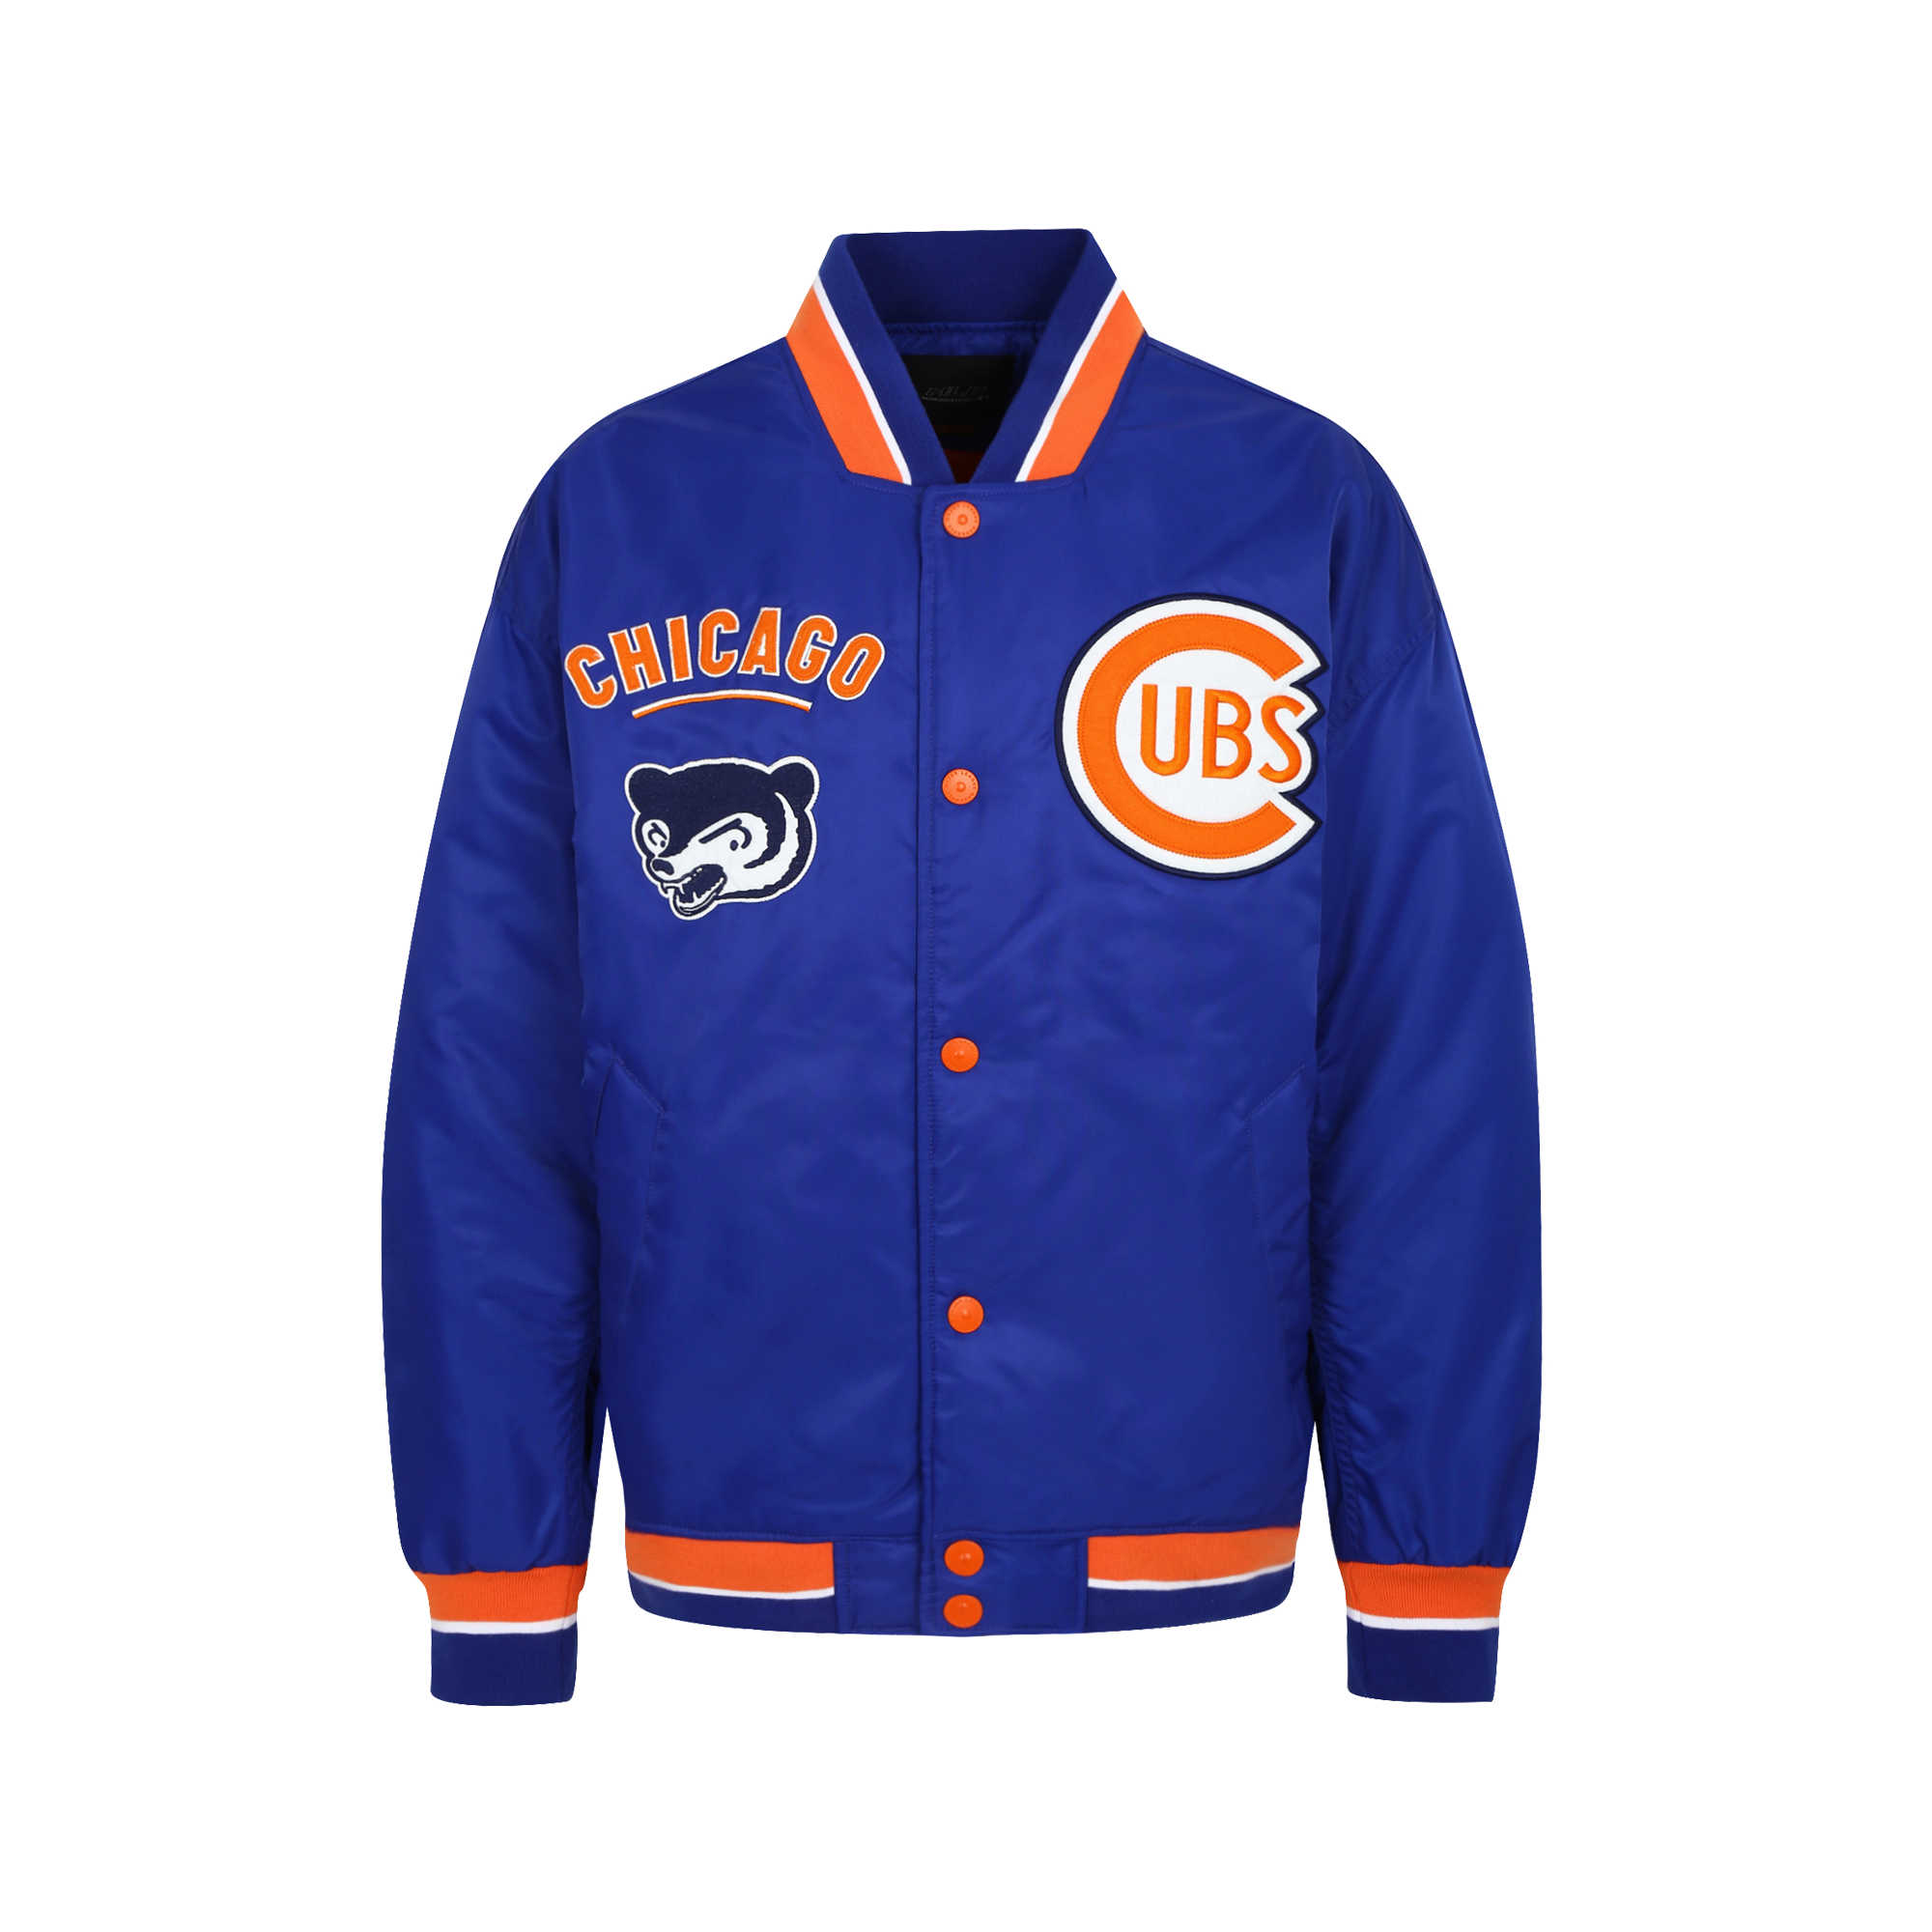 CHICAGO CUBS COOPERS PATCHWORK PADDING MONSTER JACKET